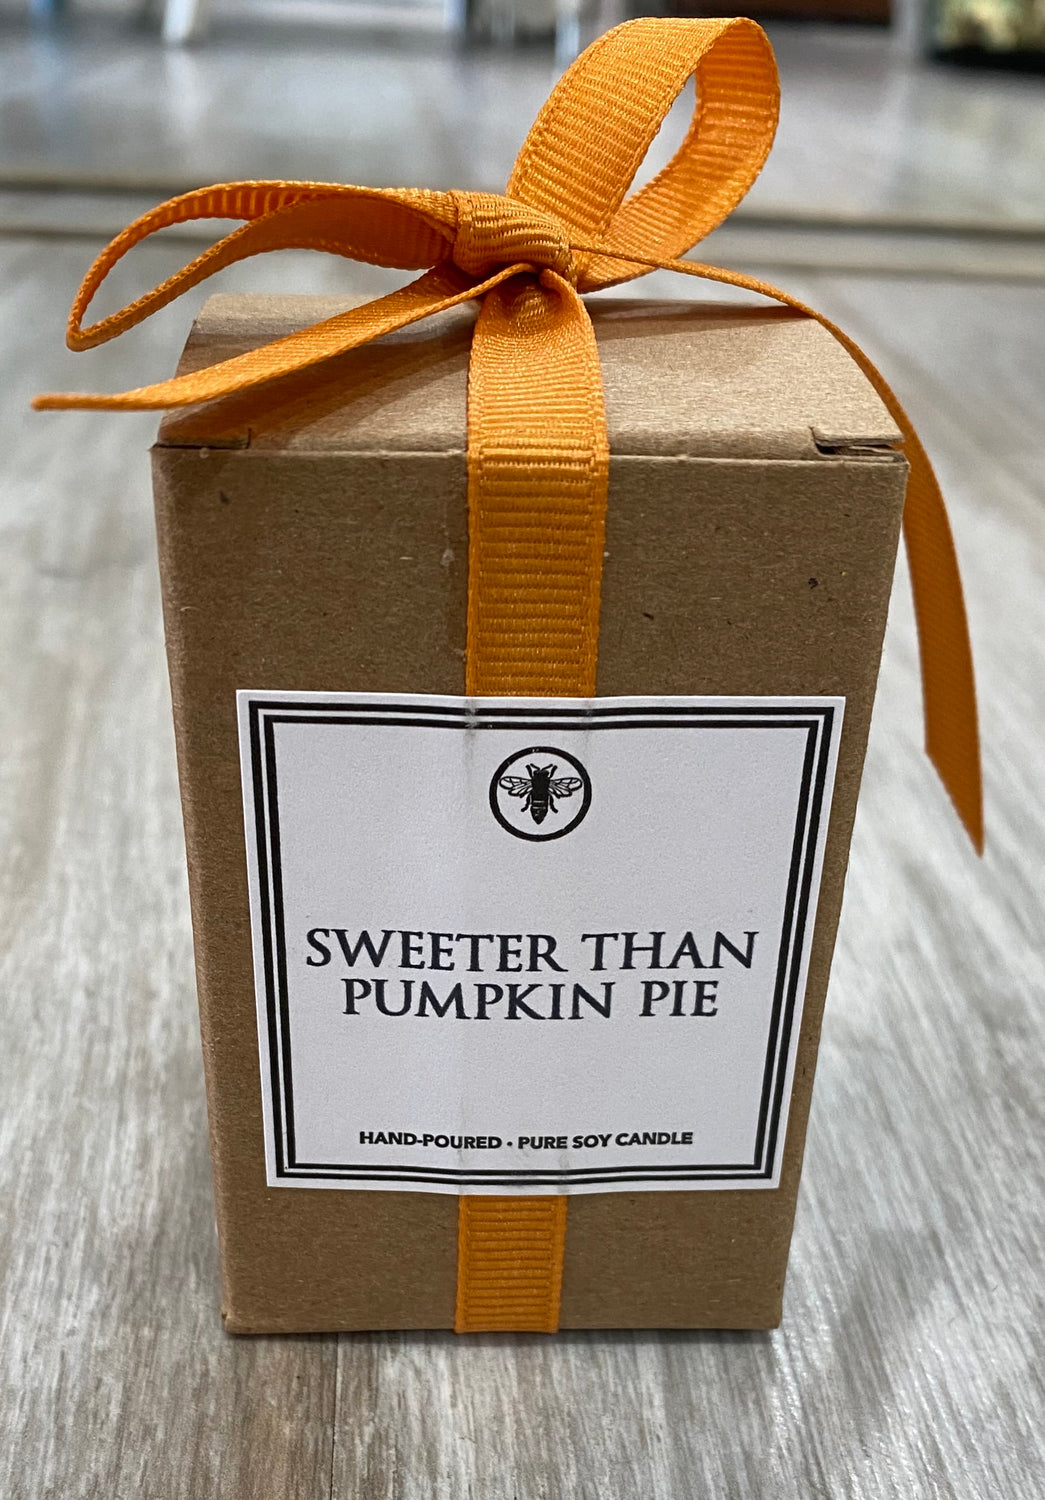 Sweeter than Pumpkin Pie Votive Candle